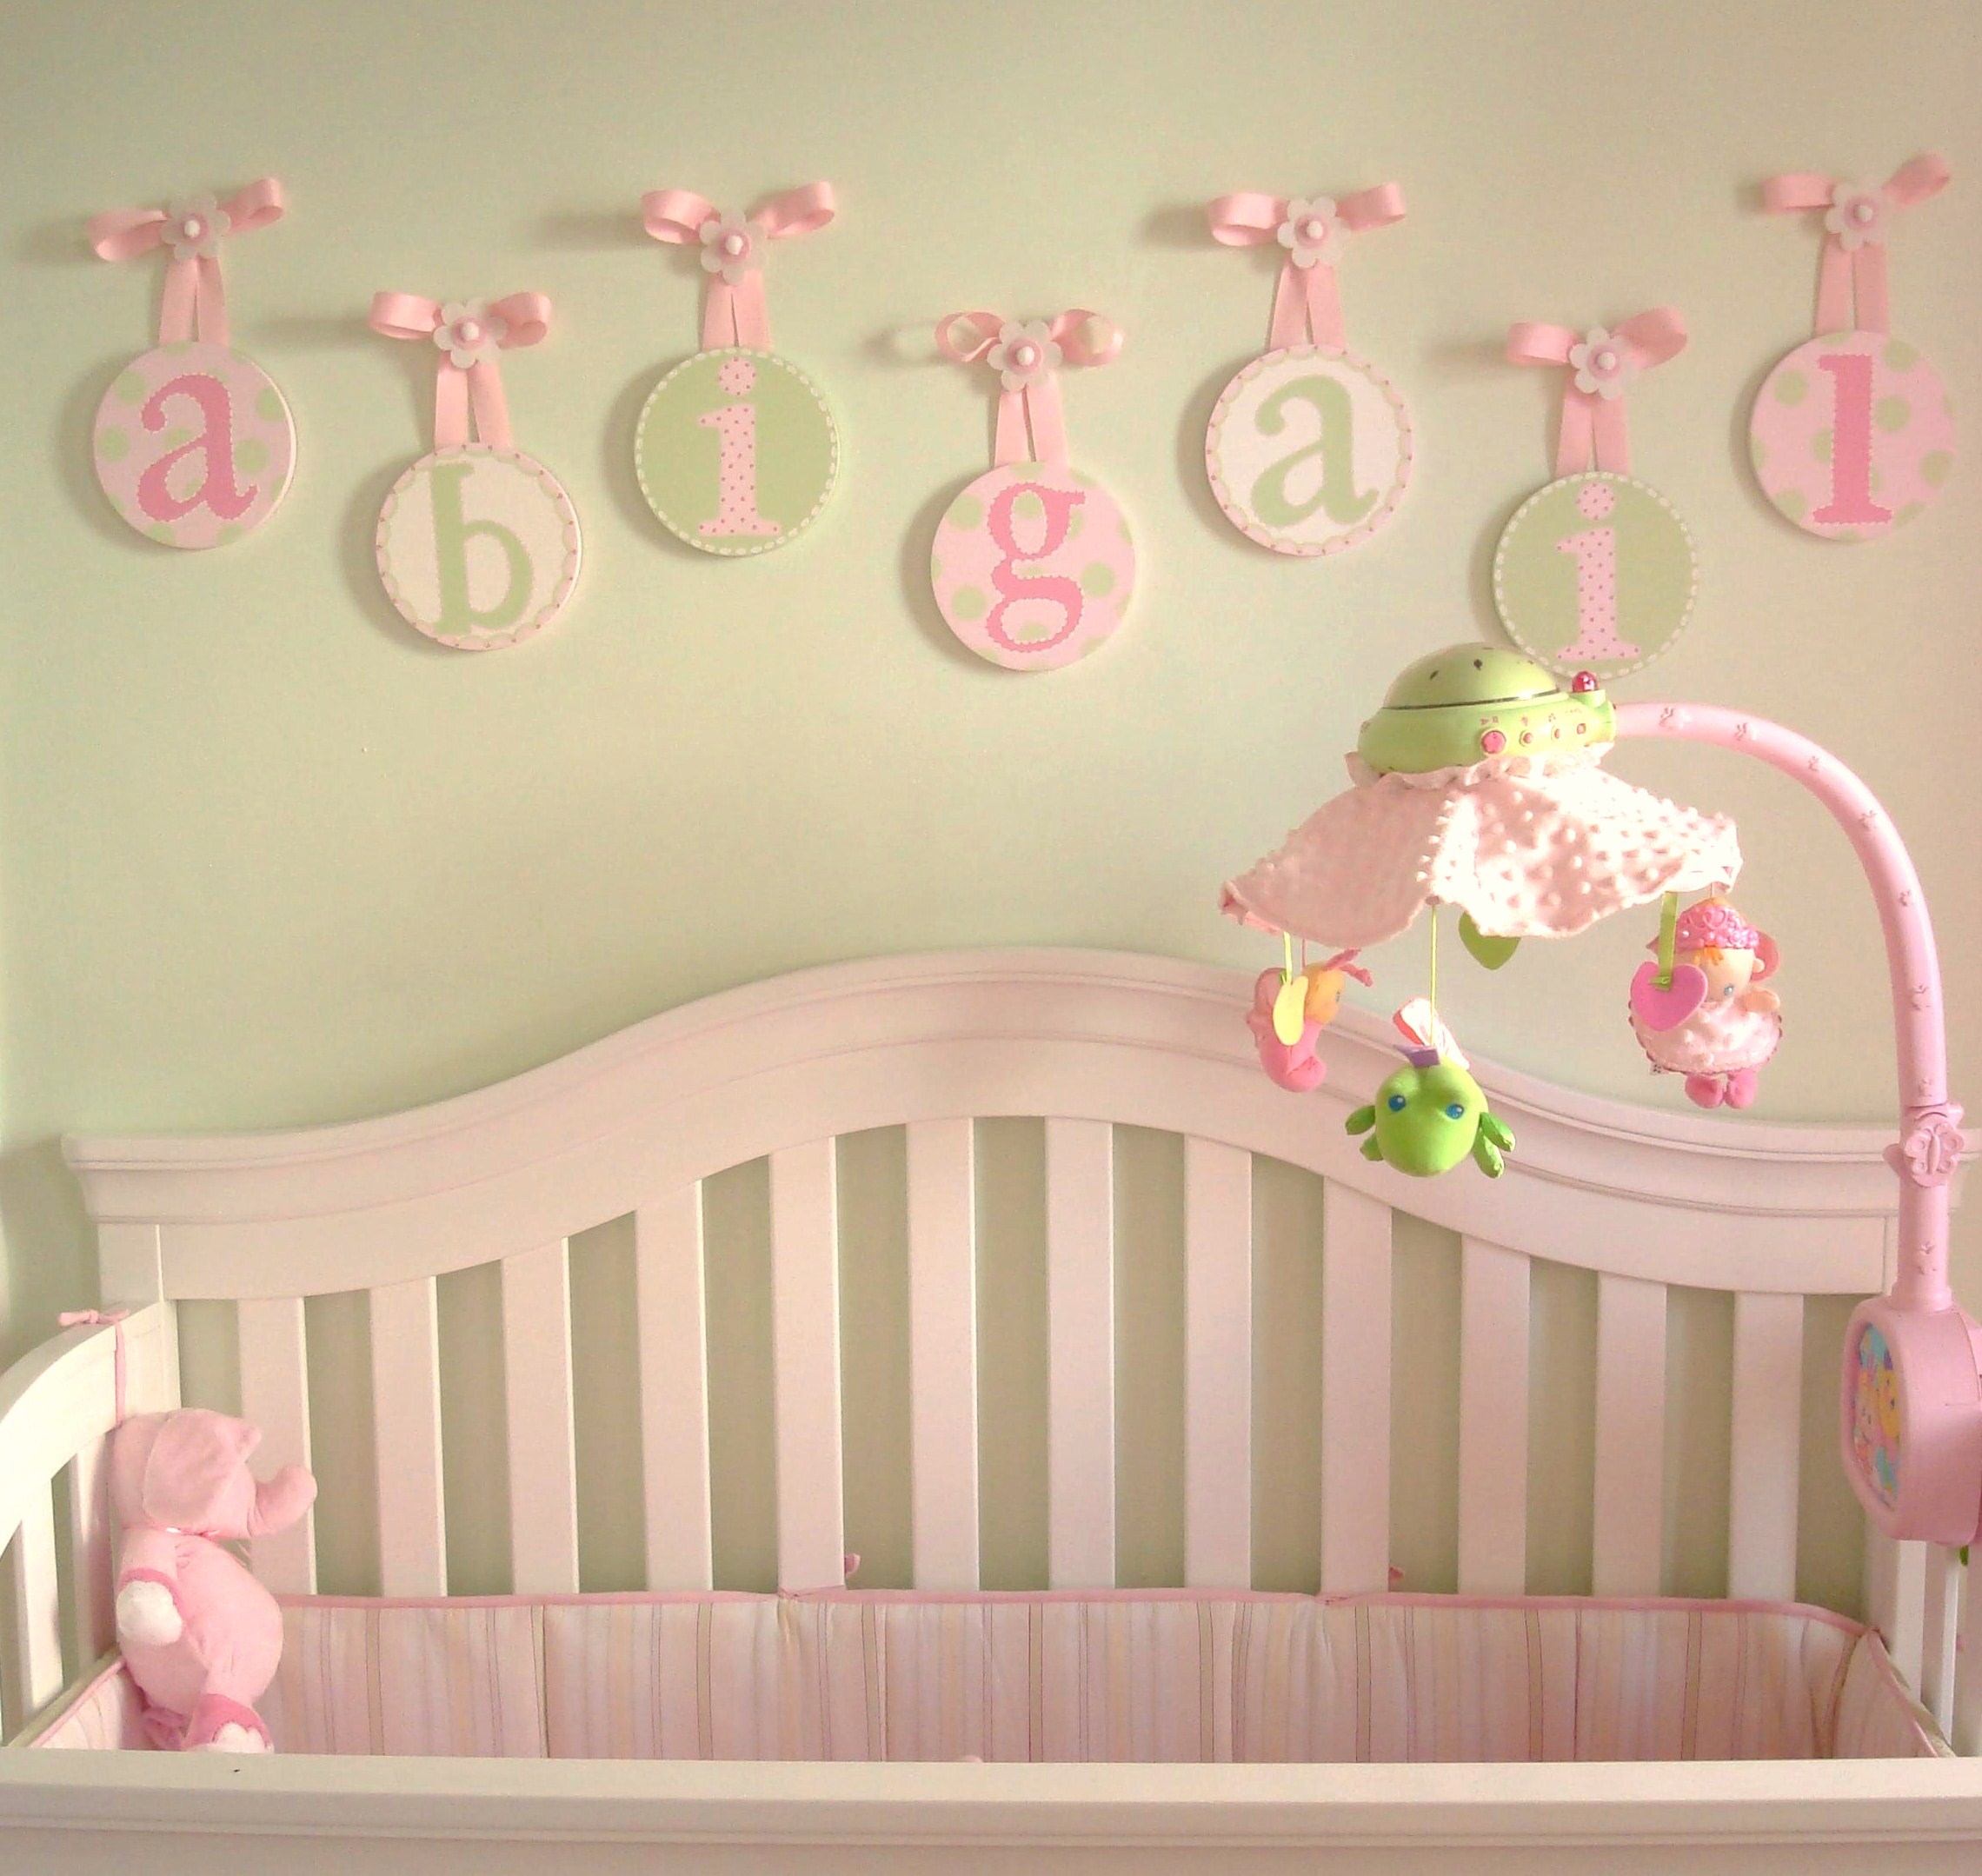 Hanging letters for Baby room wall decoration